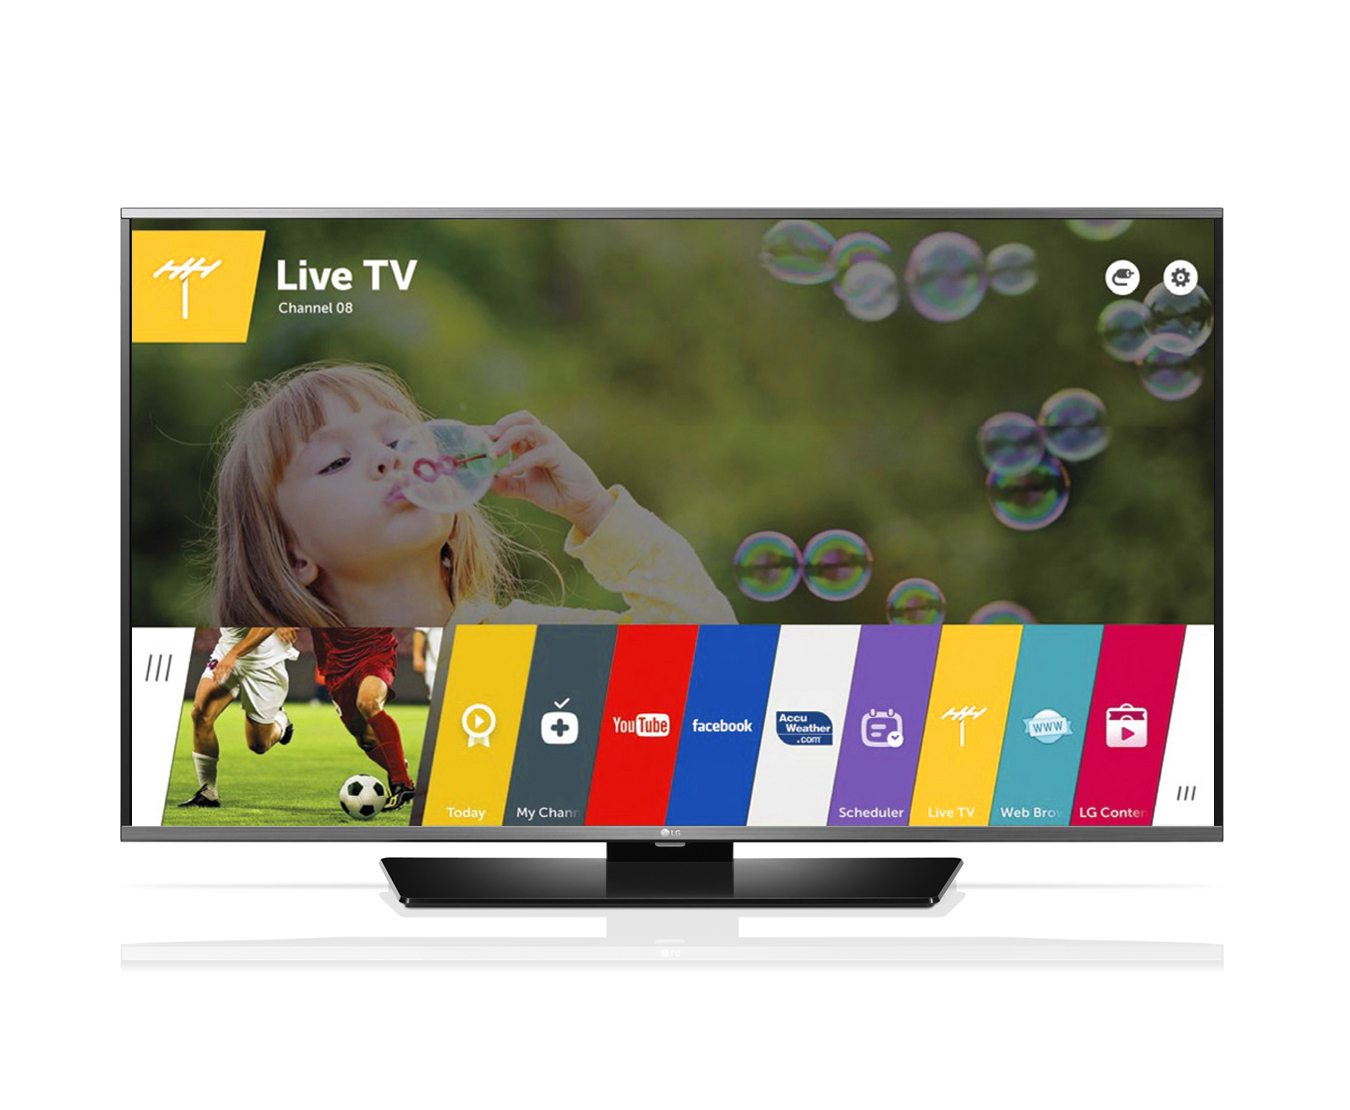 Televizor Smart LED LG 101 cm Full HD IPS 40LF630V WiFi WiDi USB CI+ Web OS Black